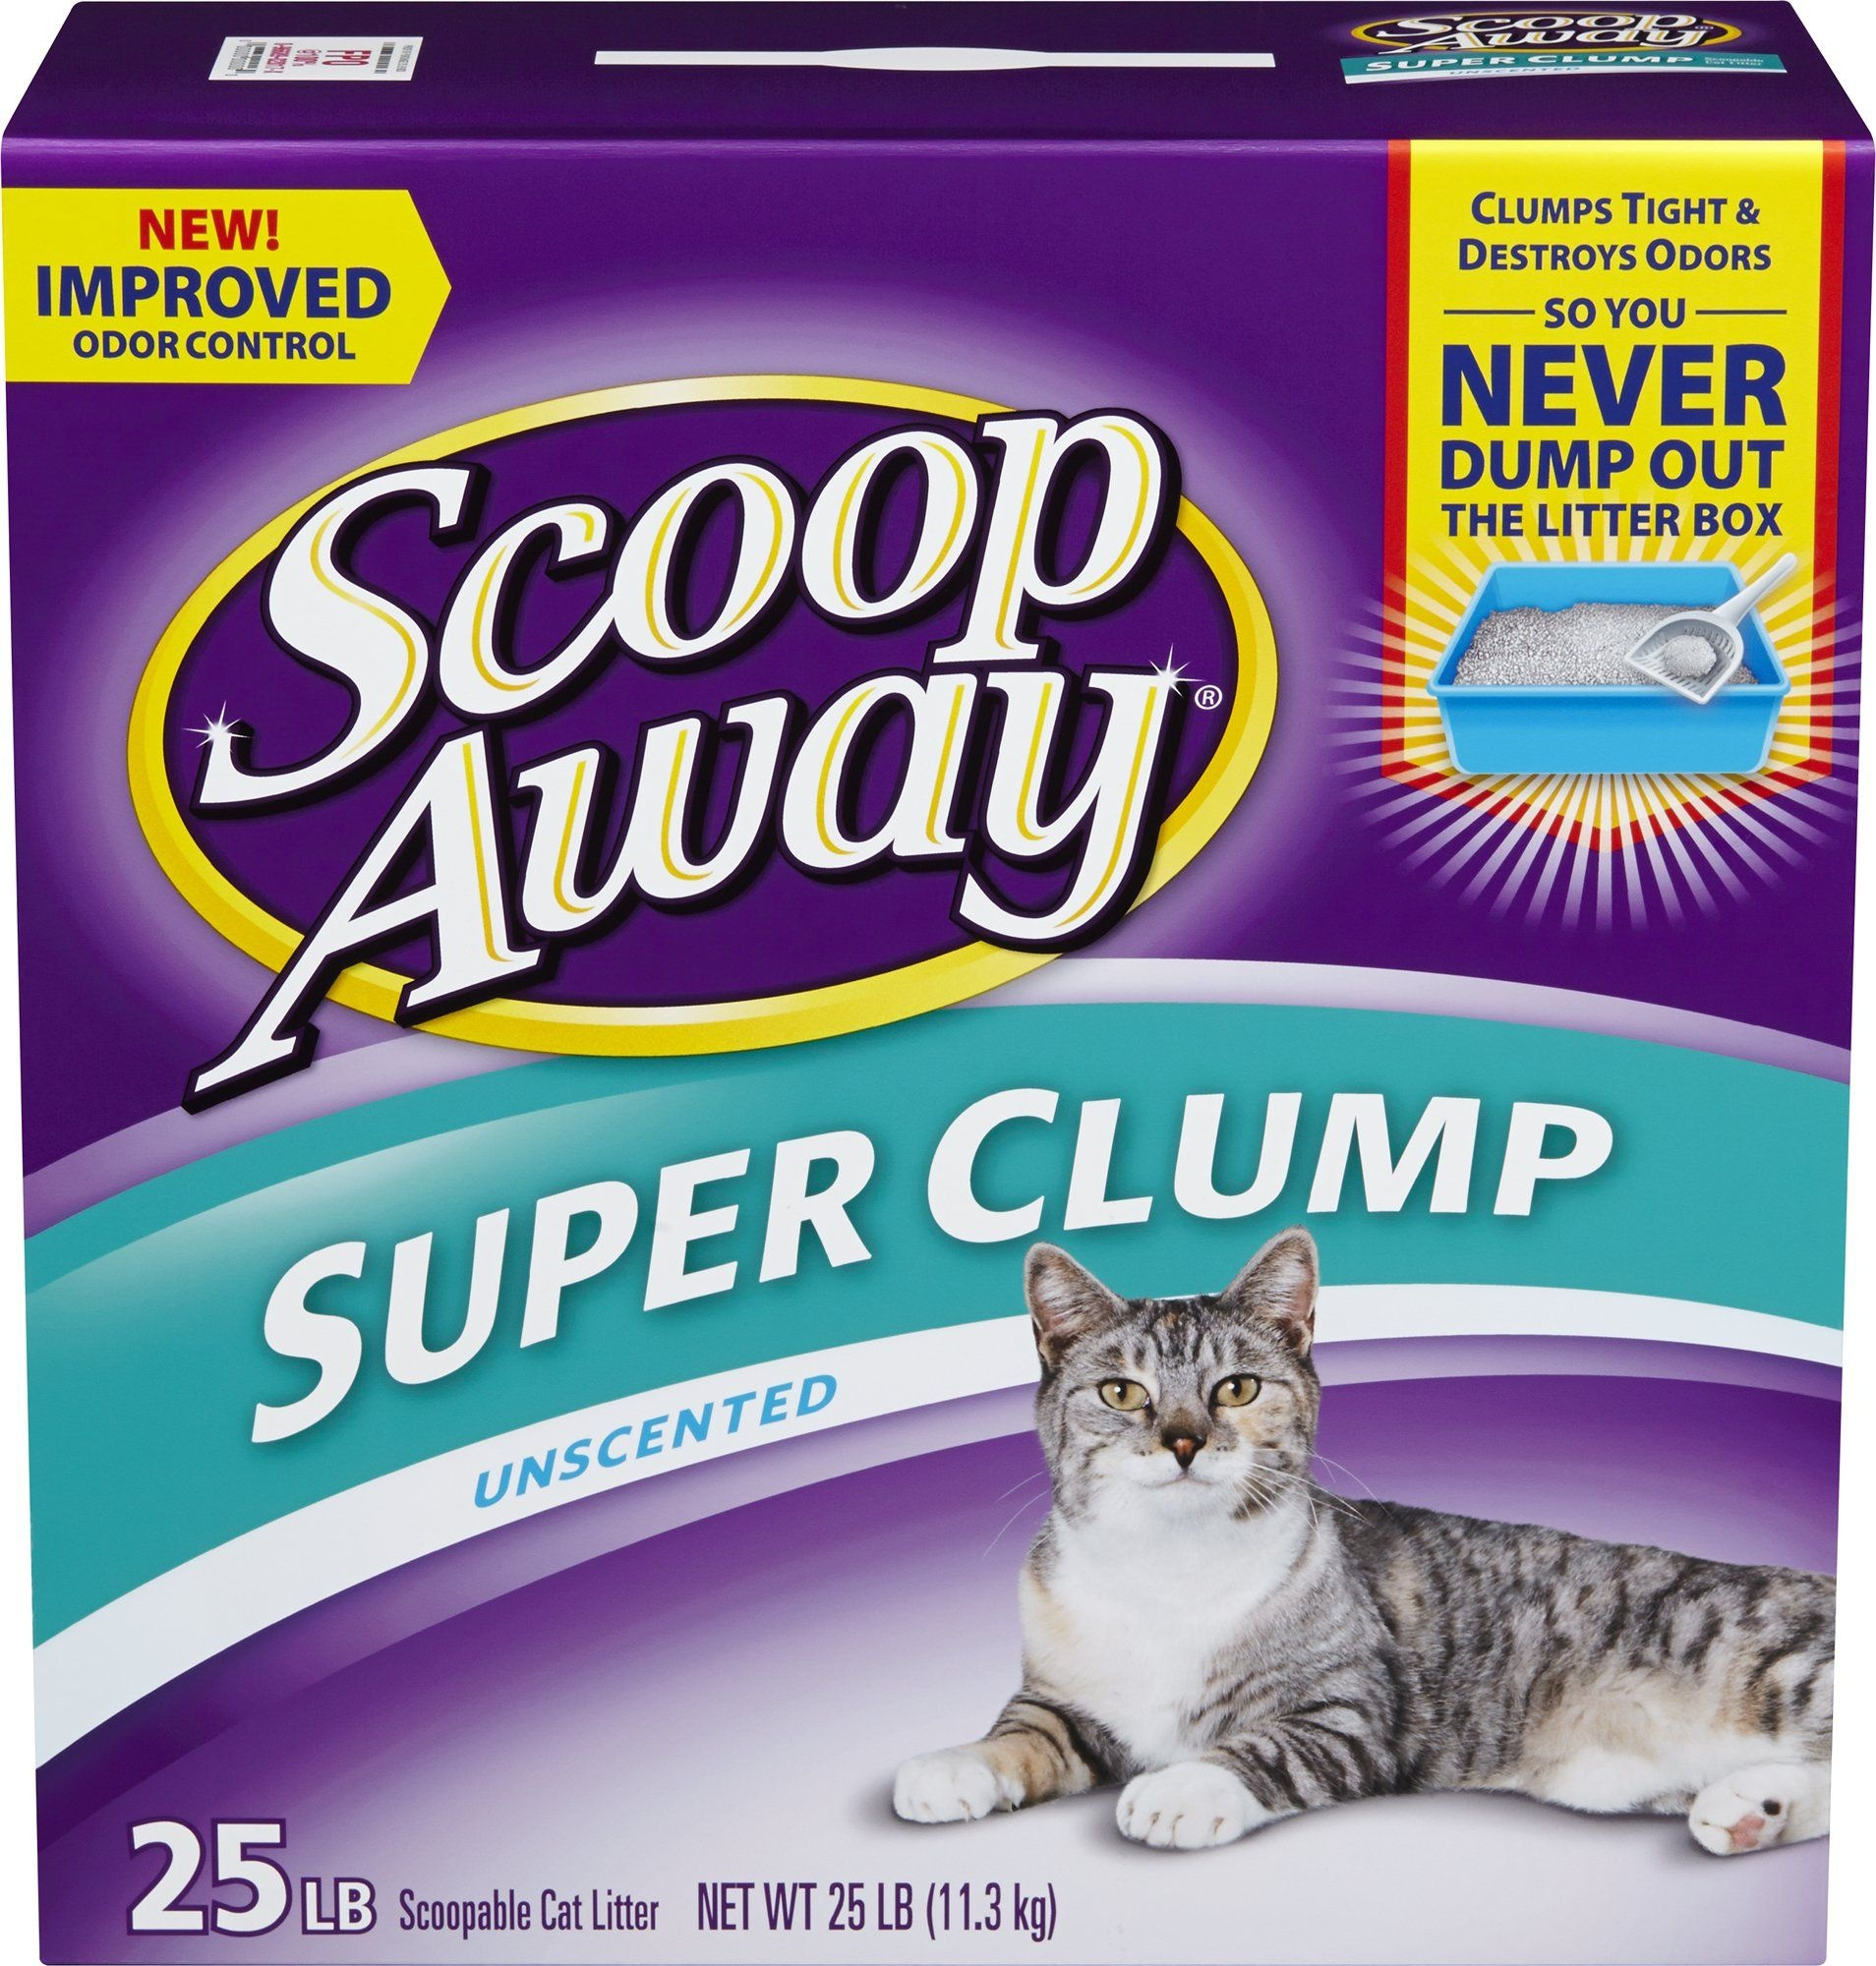 25# Unscented Clumping Cat Litter, Tough Odor Control. Free Of Dyes - Free Printable Scoop Away Coupons